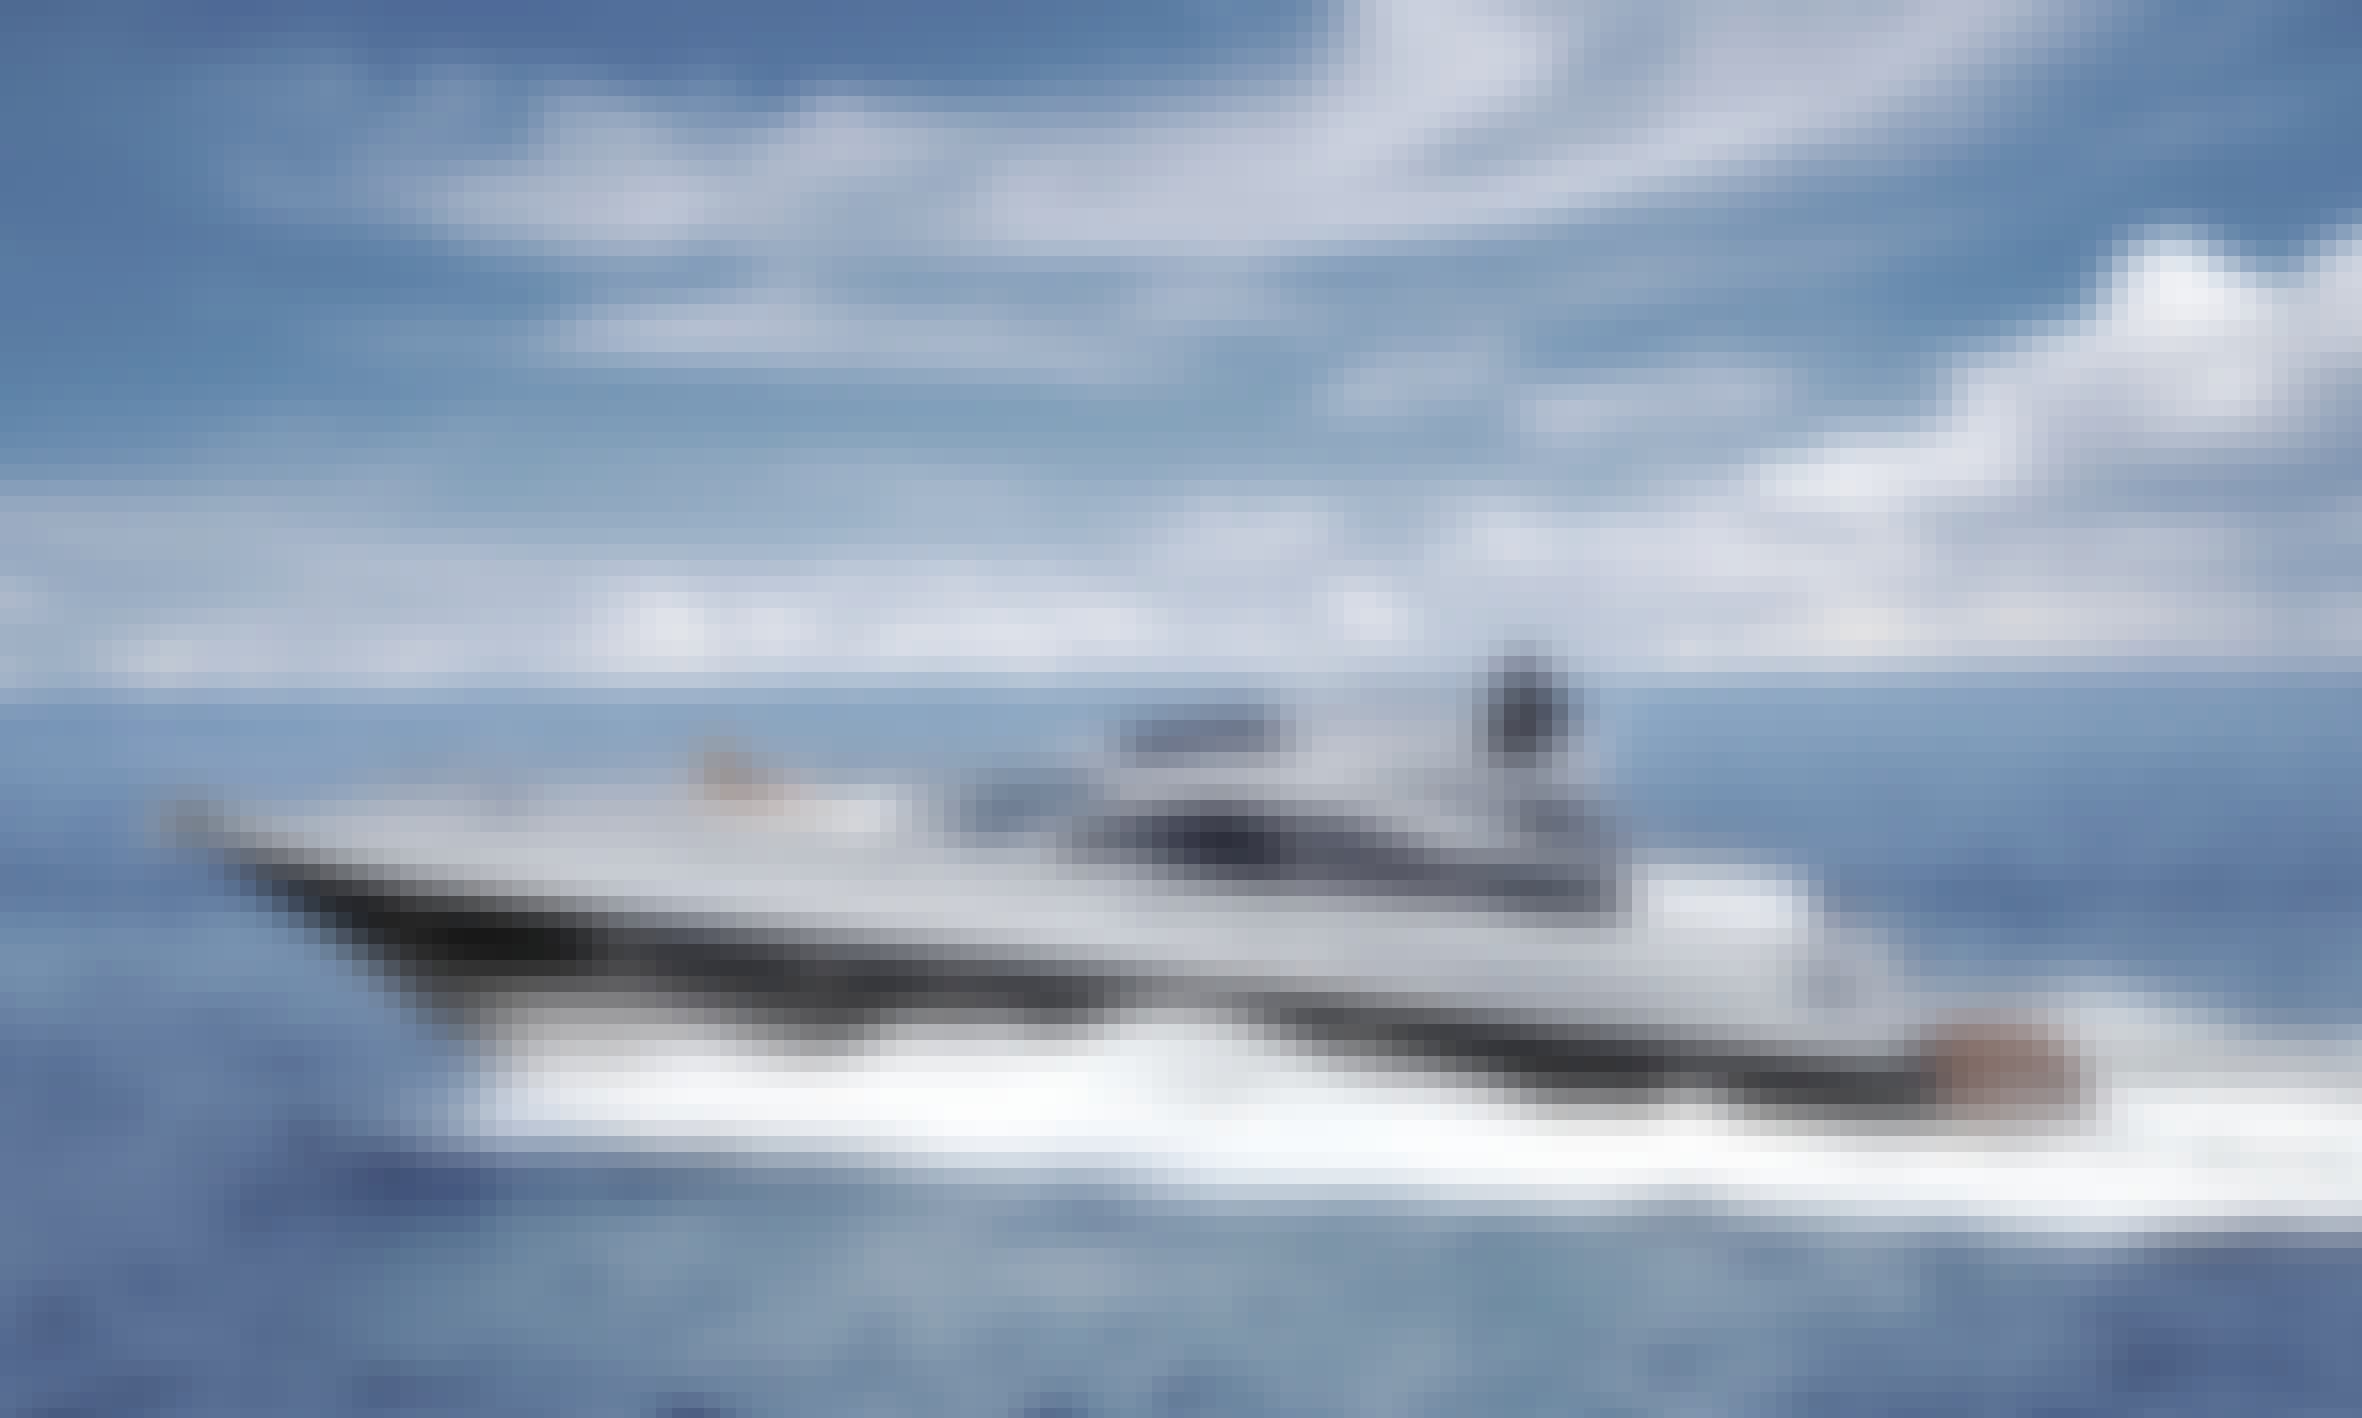 Enjoy With Family and Friend on Weekends on This 61' Sunseeker Predator Power Mega Yacht in Eivissa, Spain